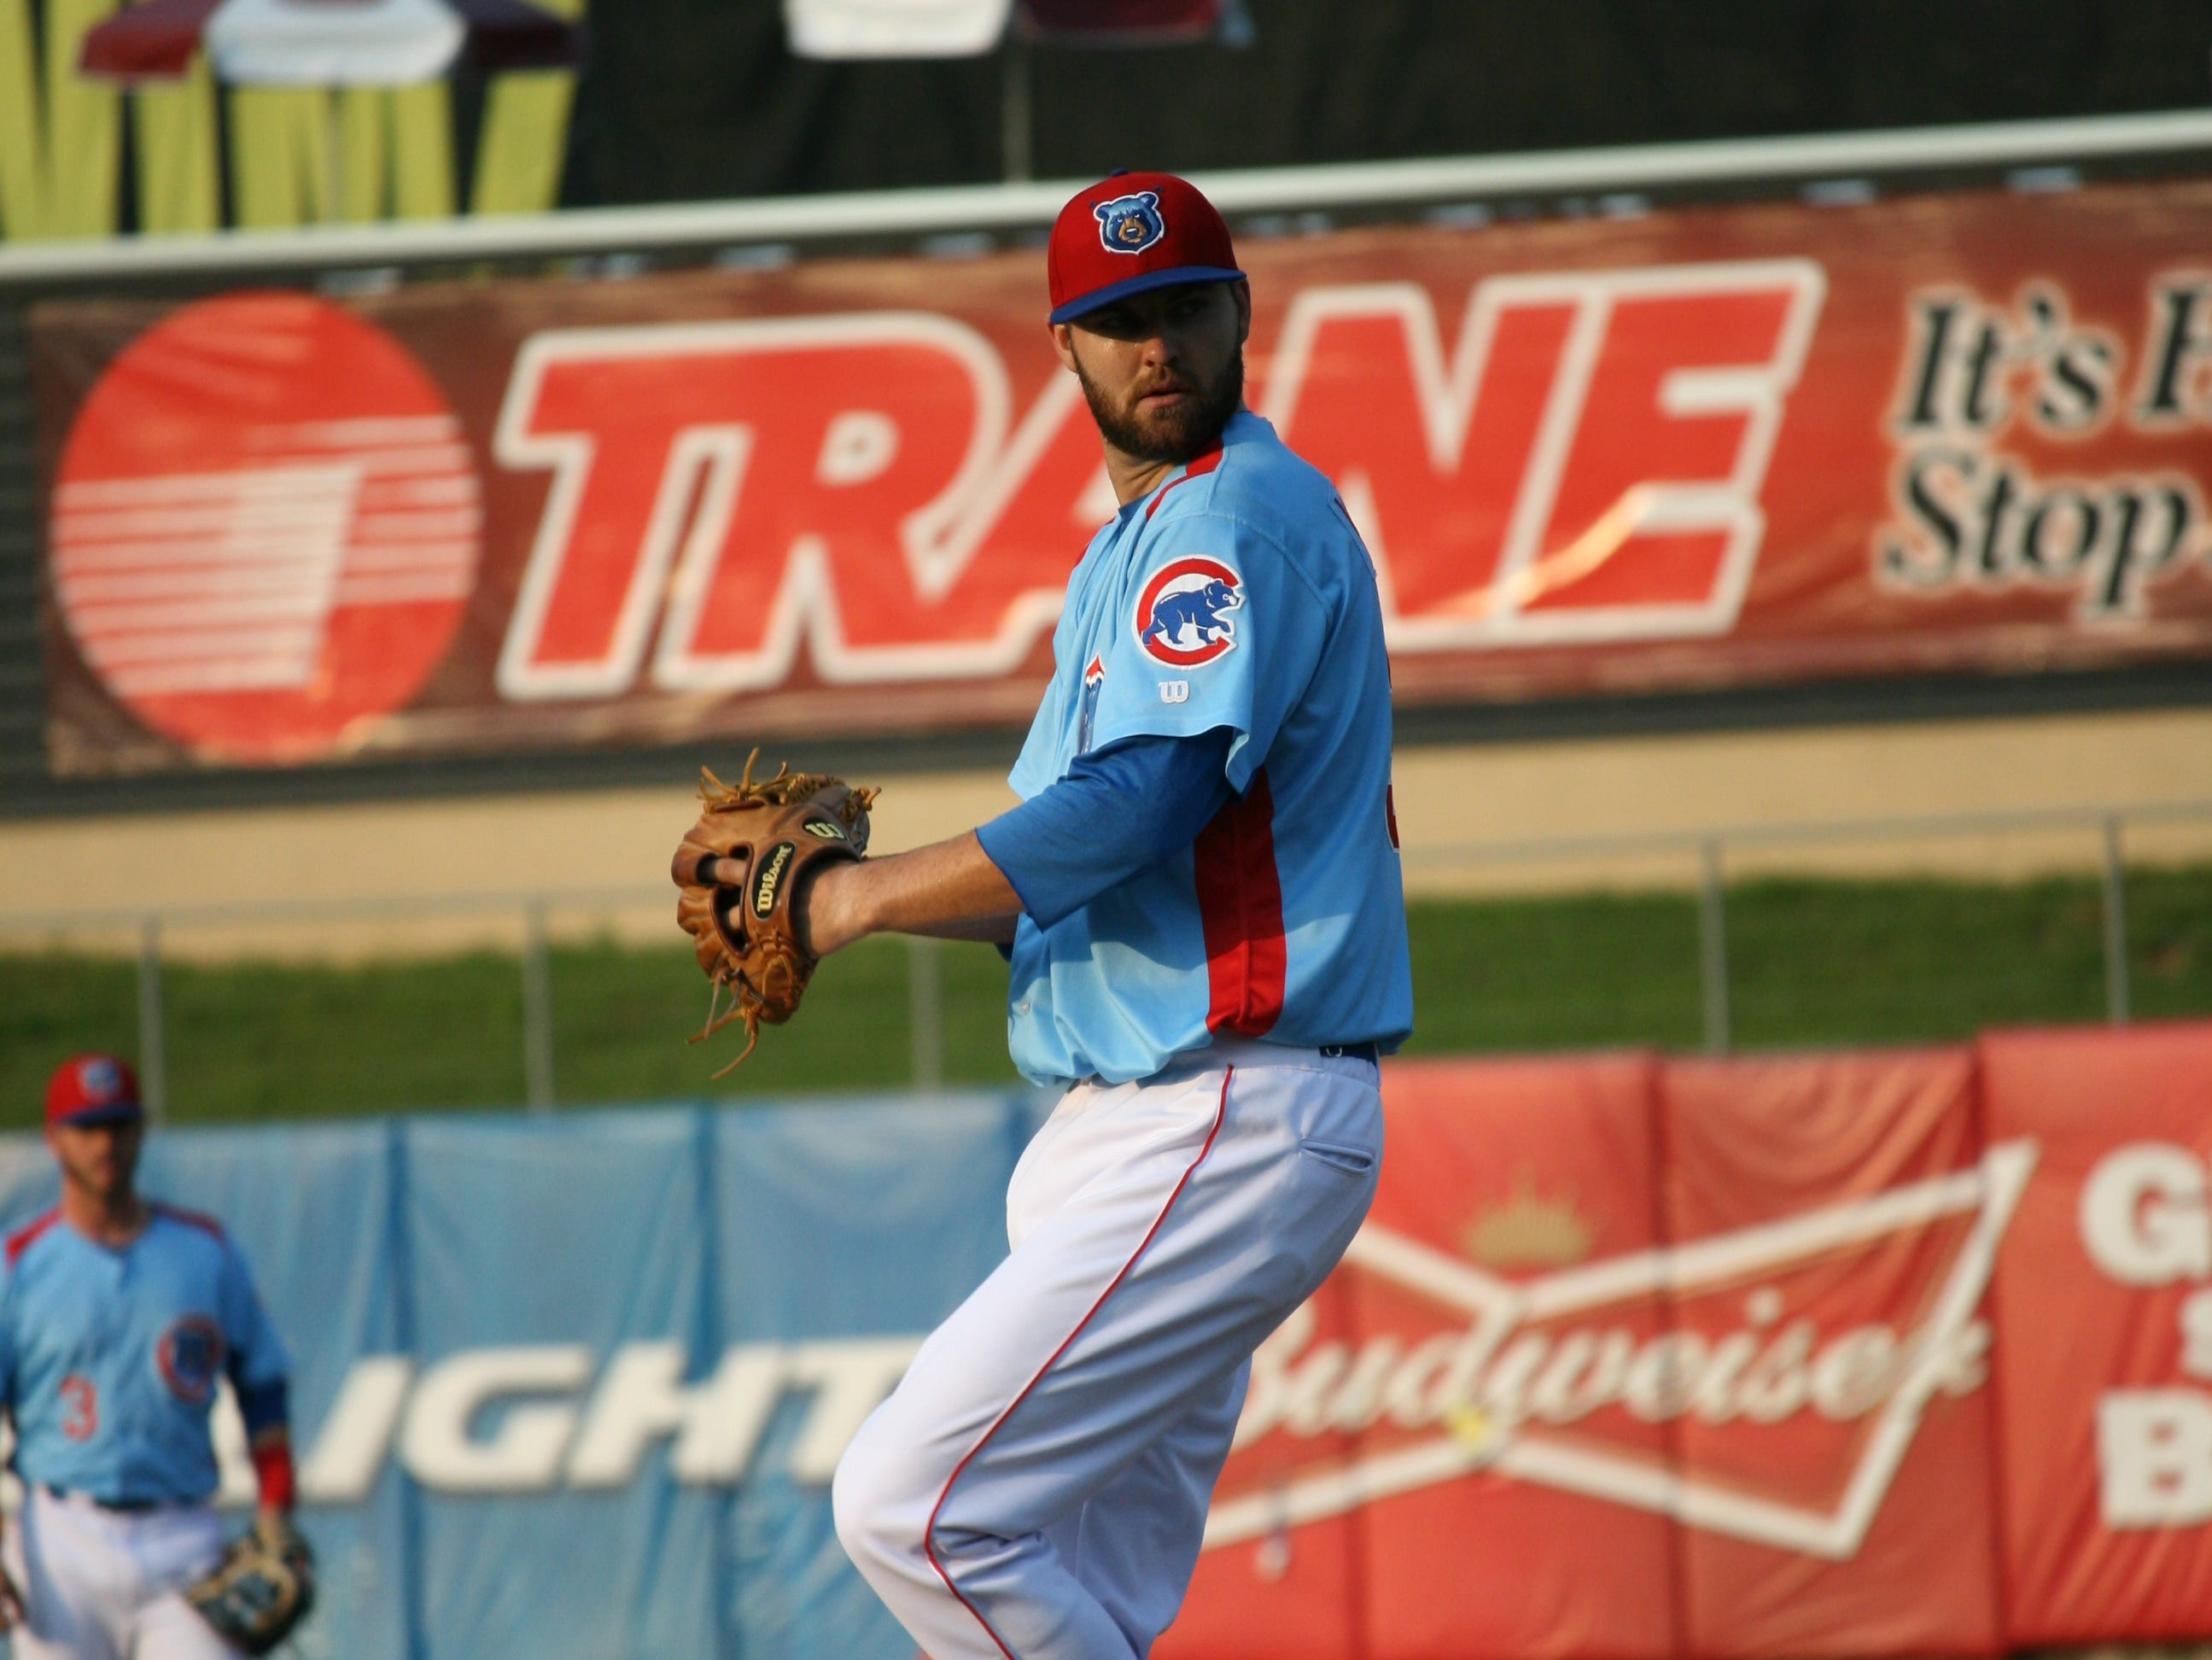 Tennessee pitcher Ryan Williams won his fifth game in August by beating Jacksonville on Monday night at Smokies Stadium.